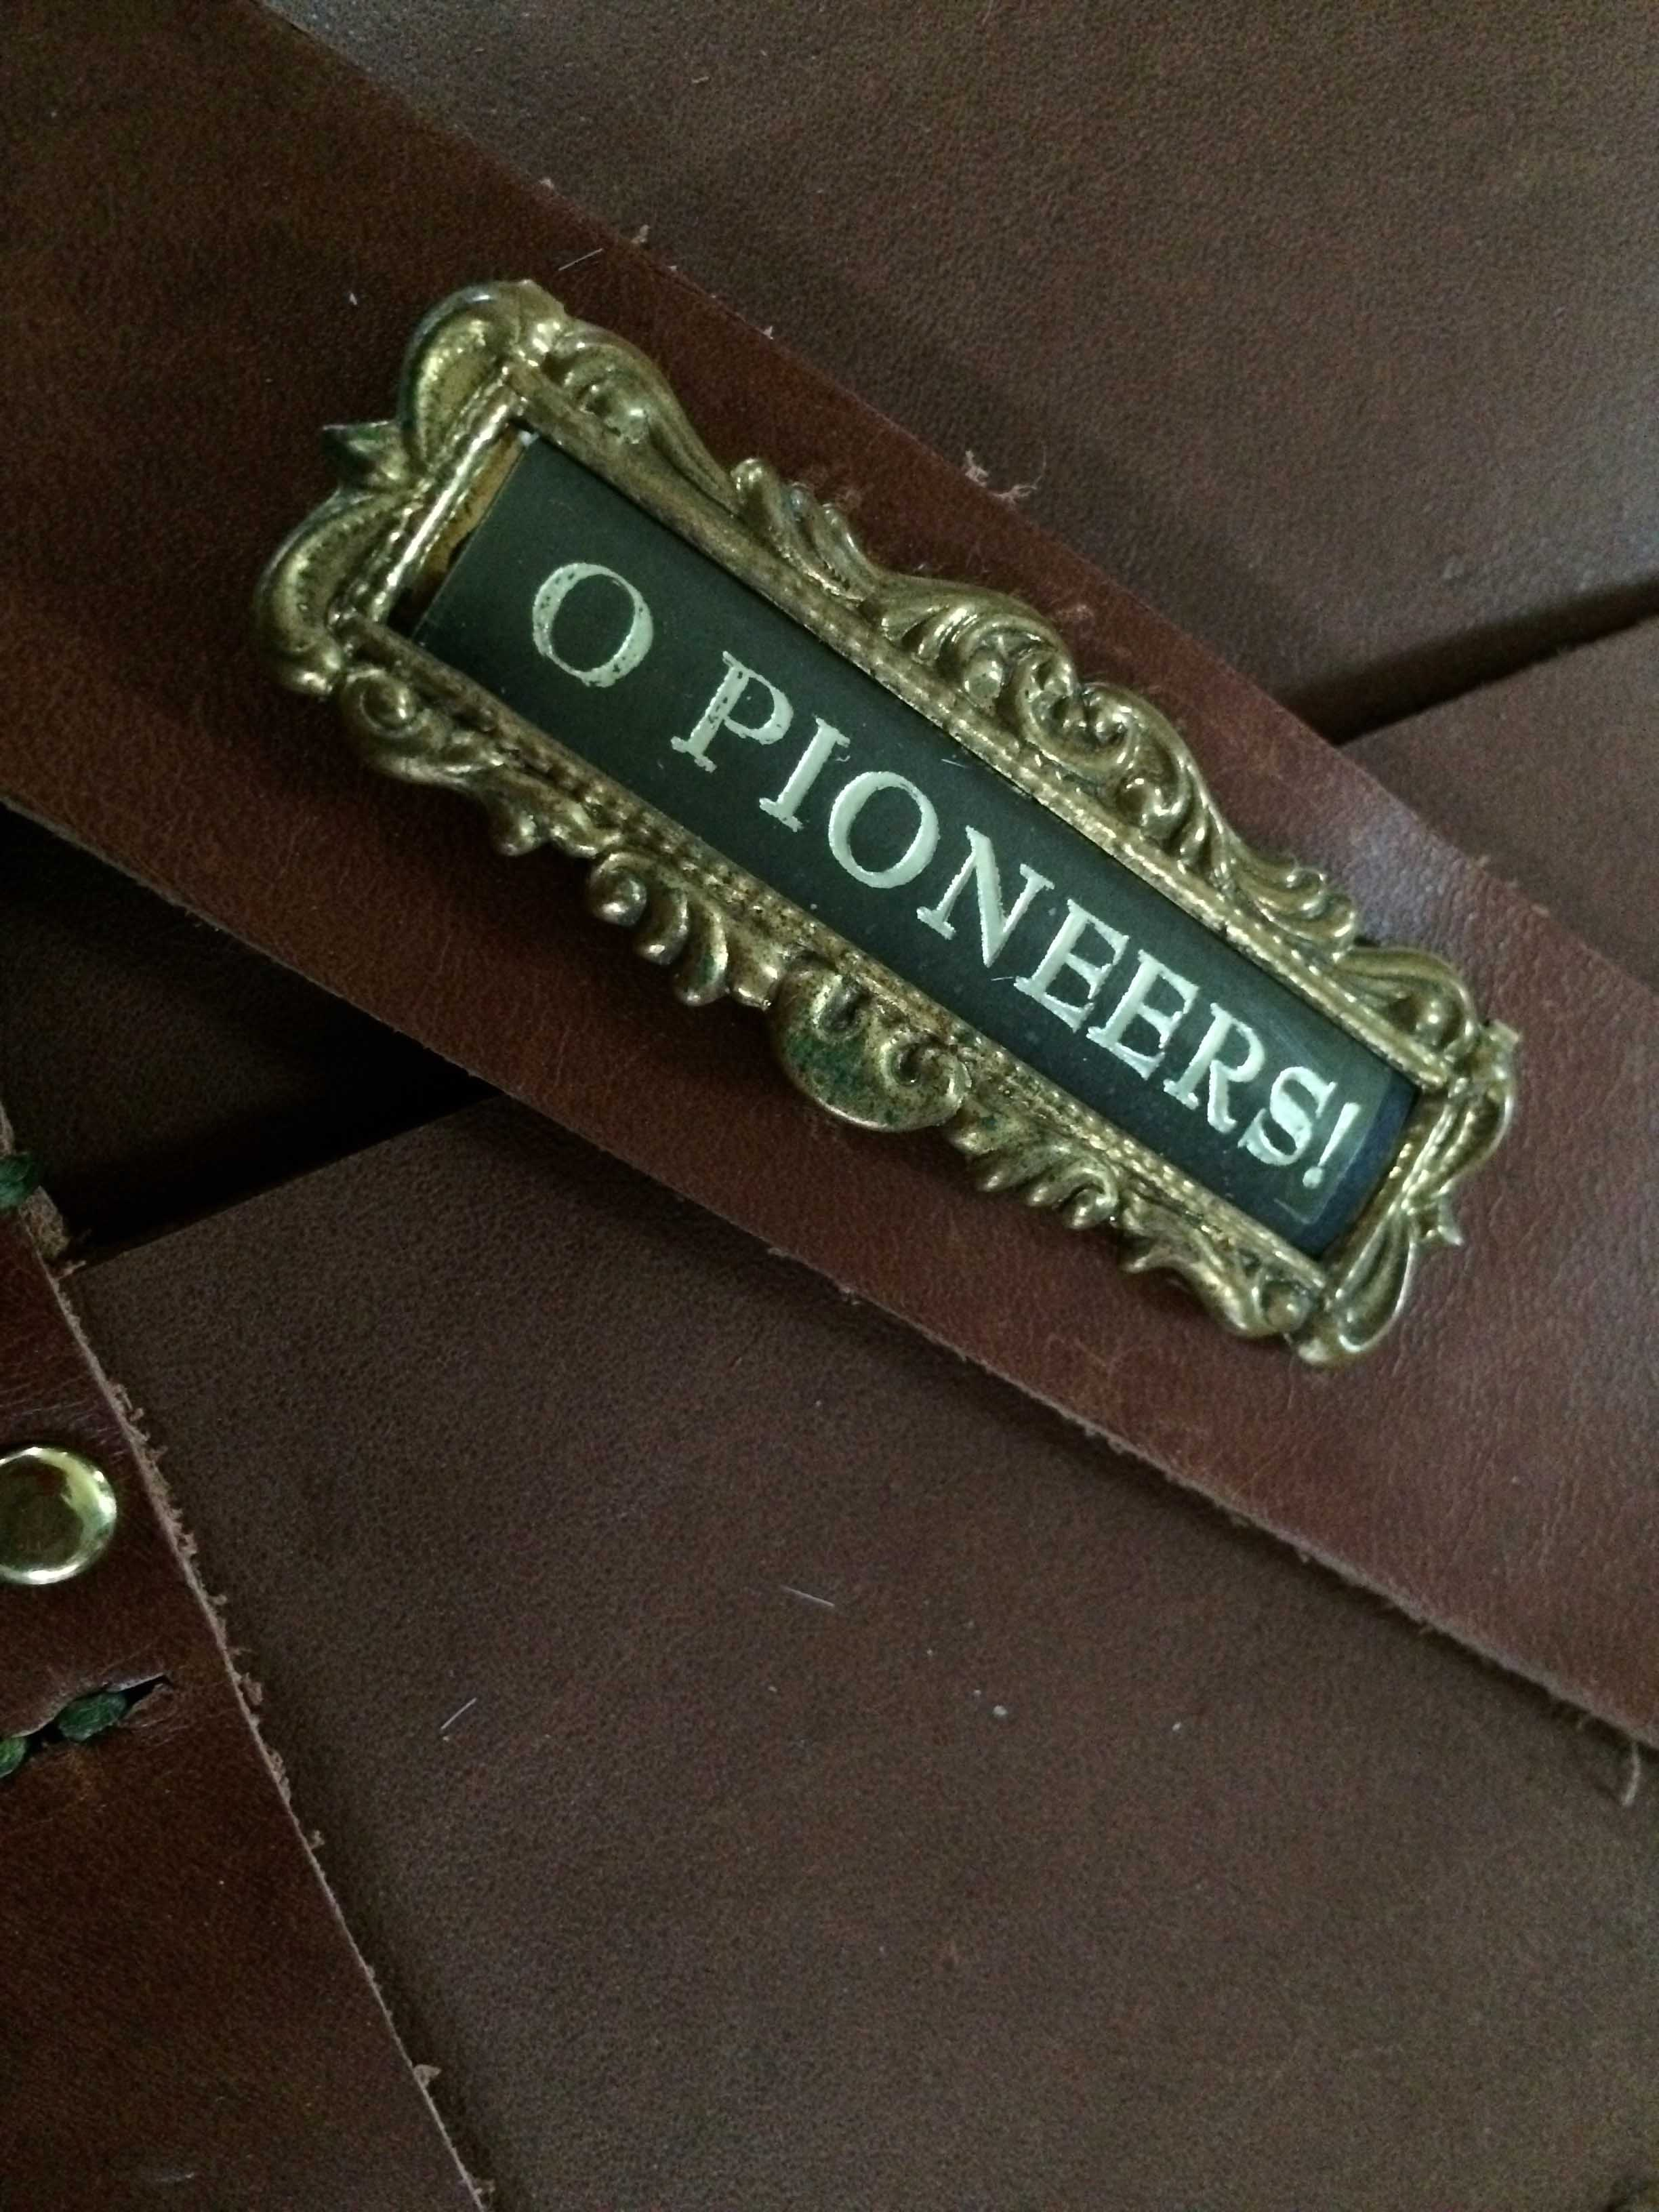 dski-design-o-pioneers-journal-6.jpg